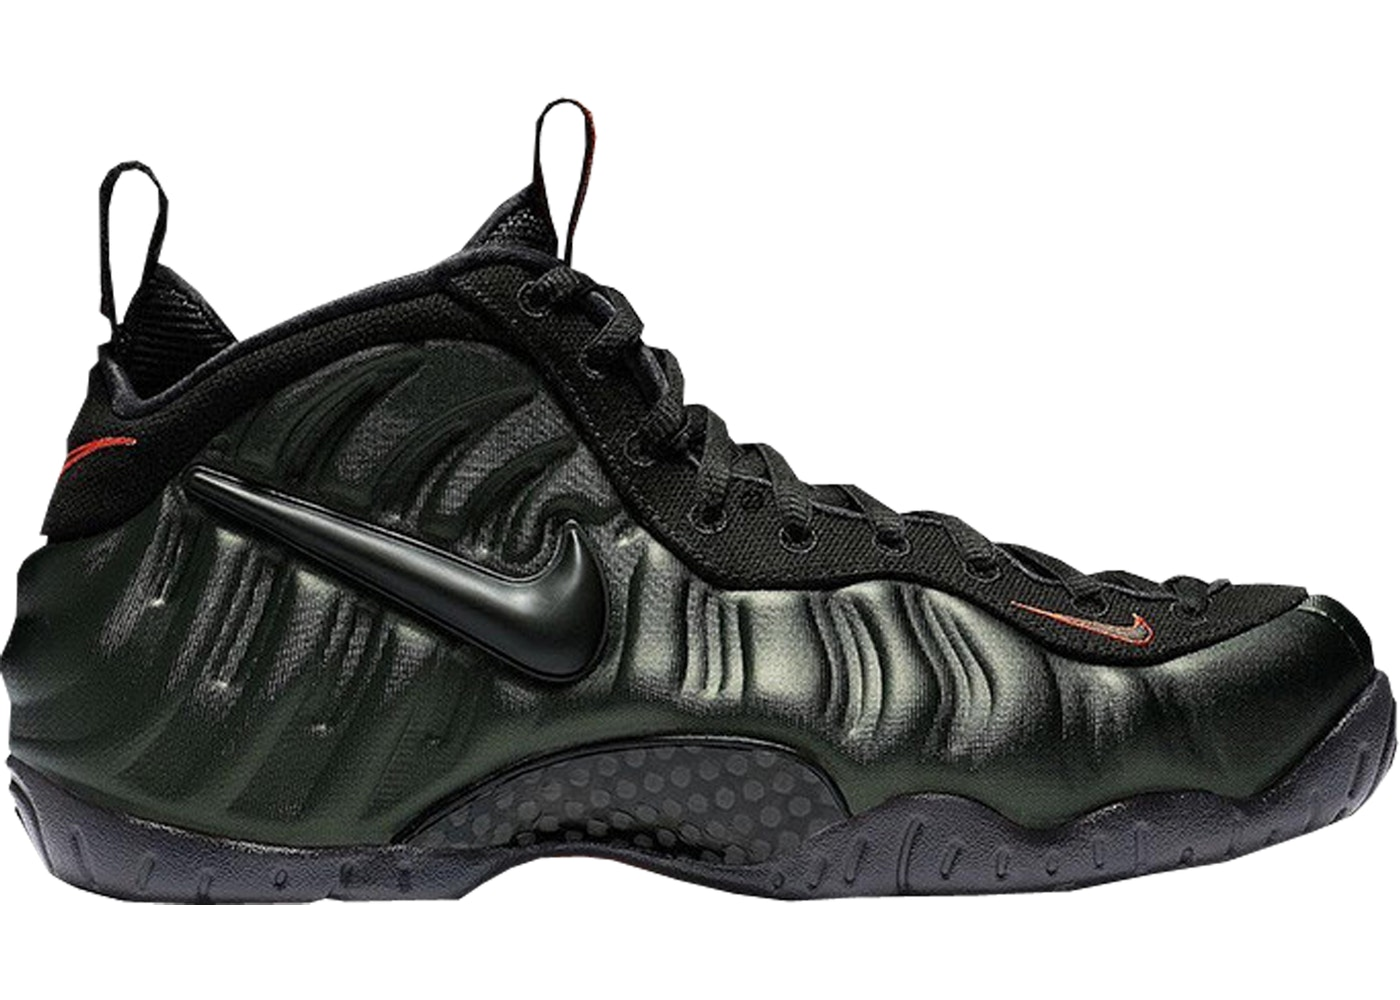 check out 210bf a36e5 Air Foamposite Pro Sequoia - 624041-304